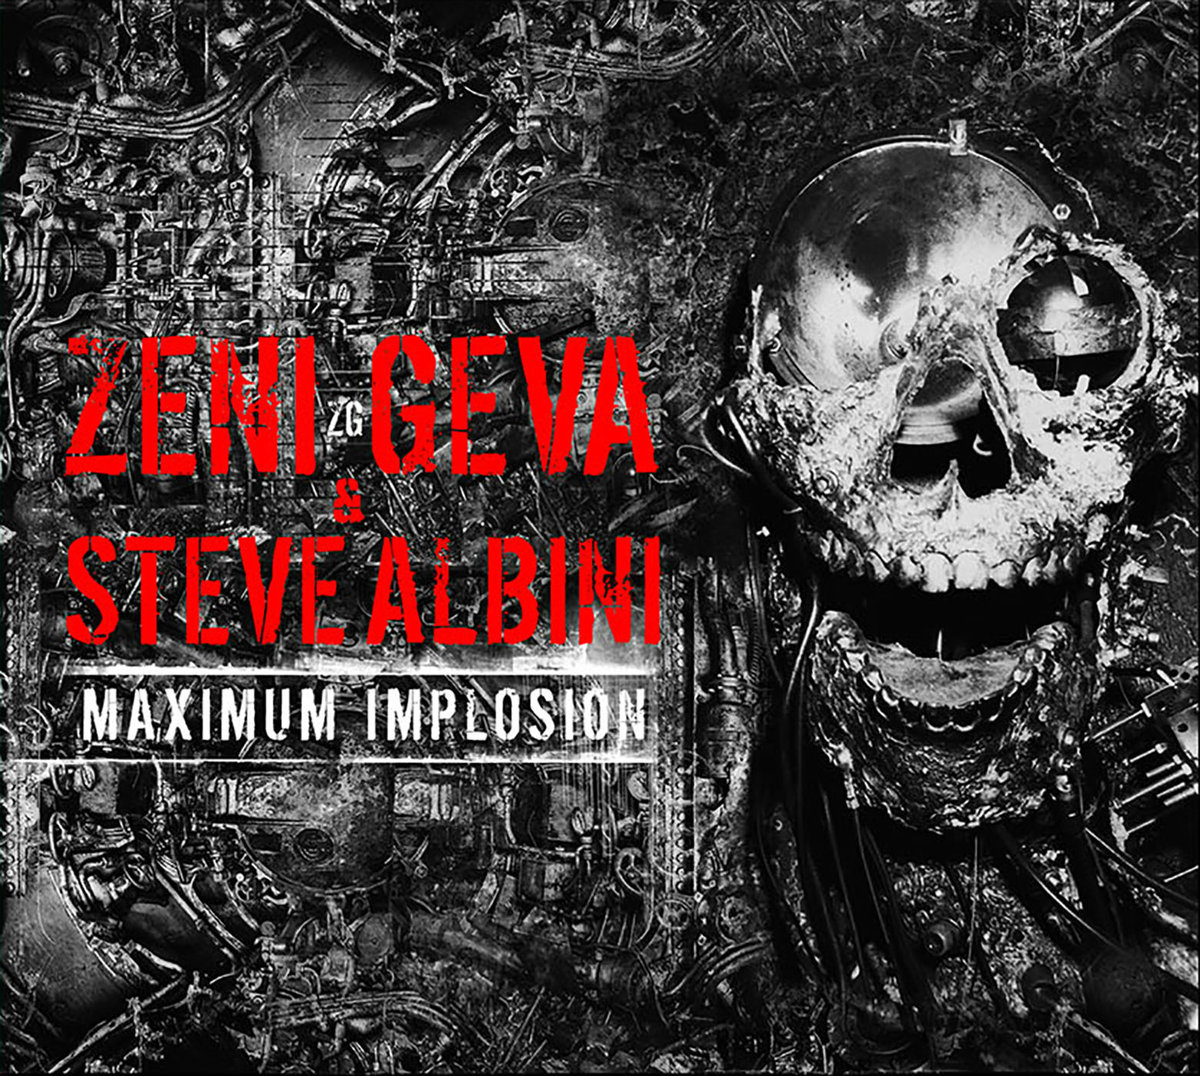 Zeni Geva & Steve Albini - Maximum Implosion